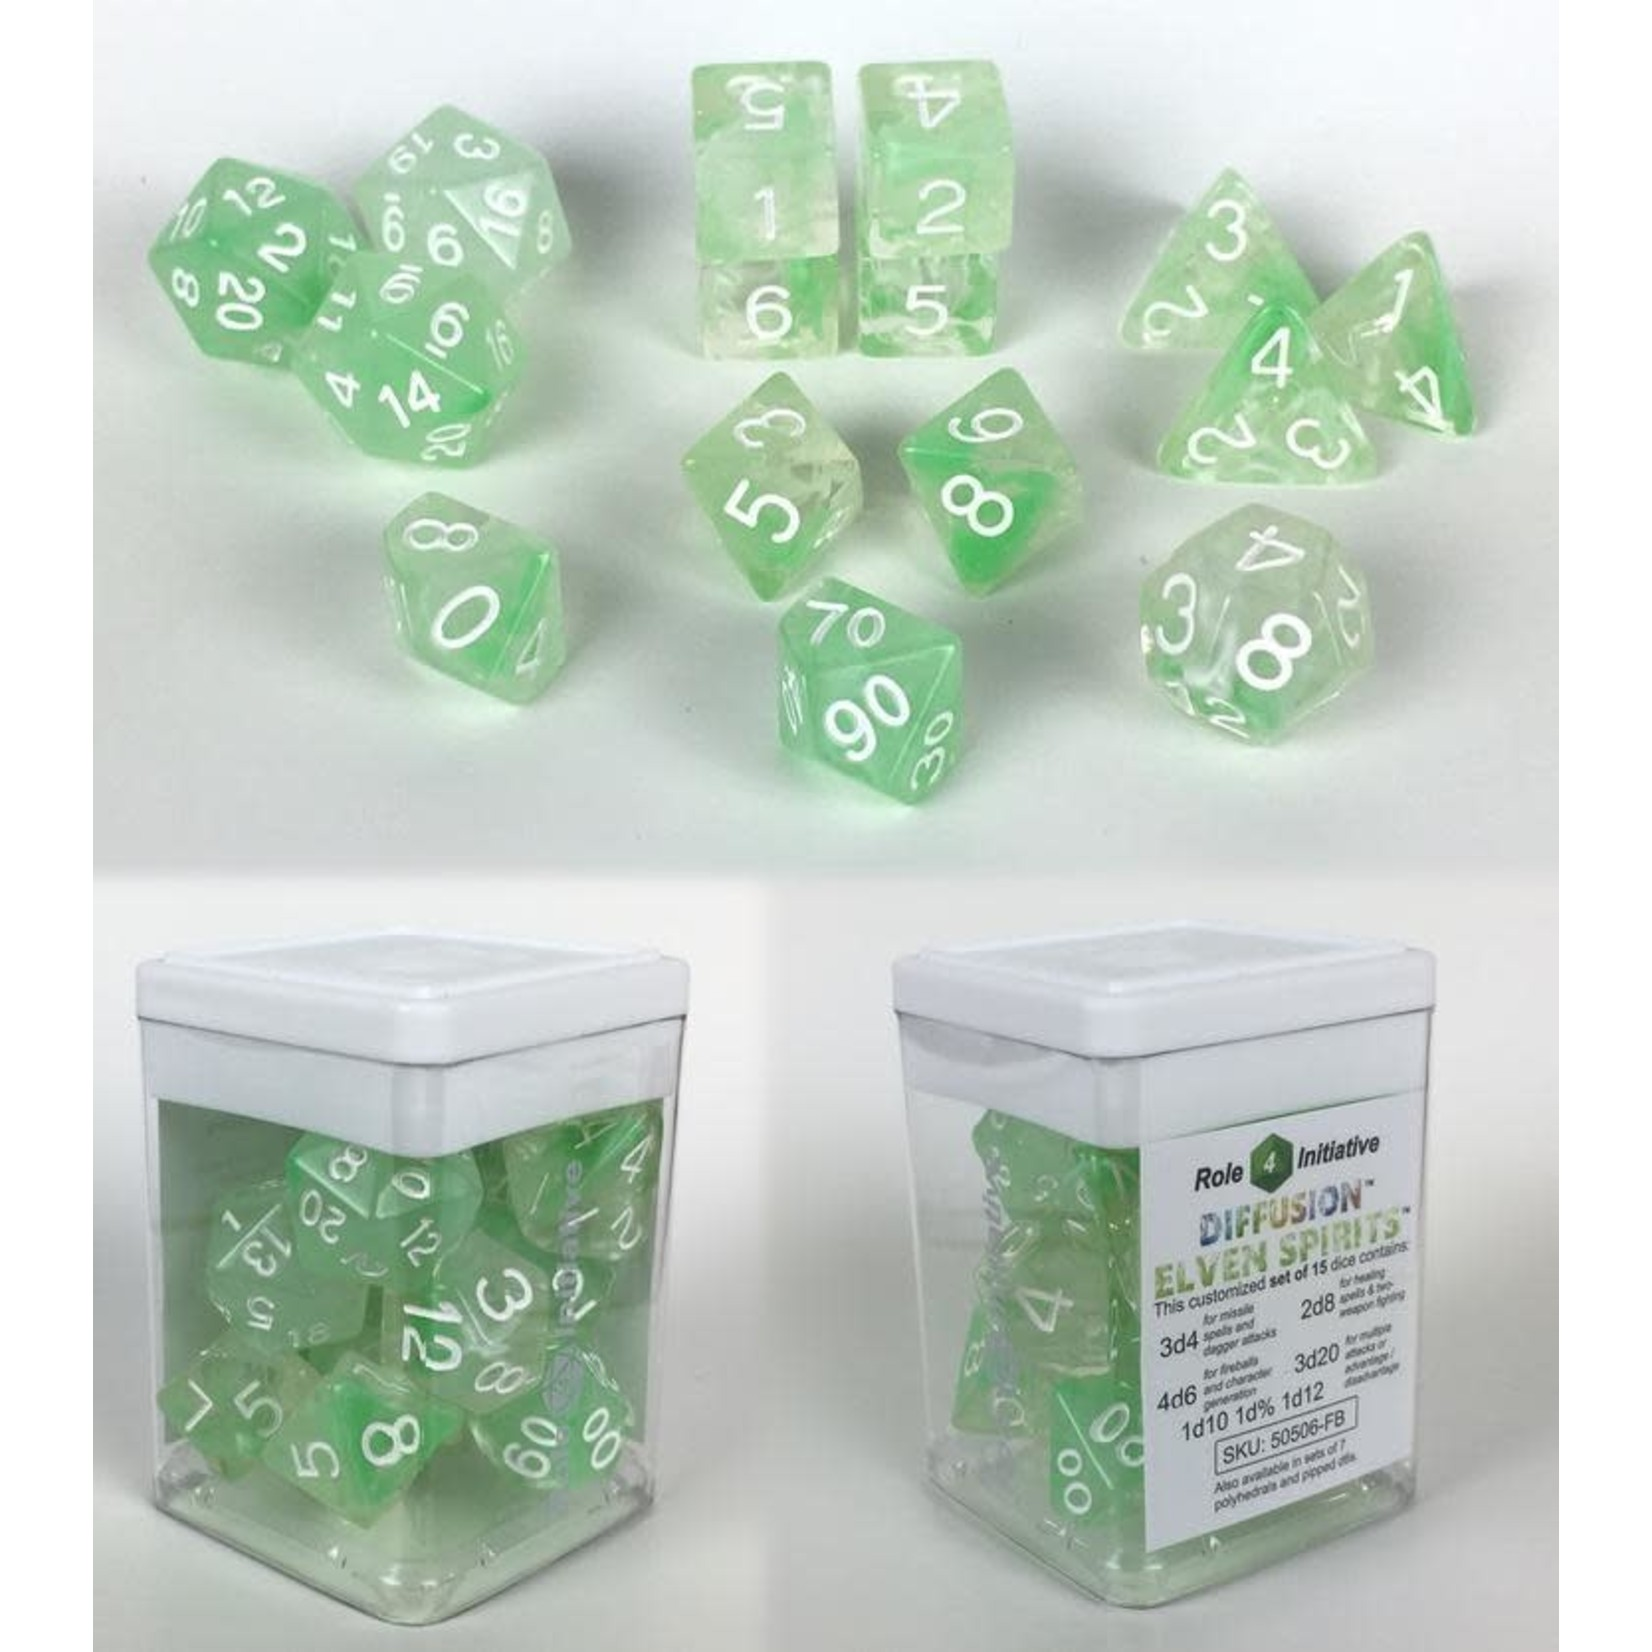 Roll 4 Initiative Polyhedral Dice: Diffusion Elven Spirits - Set of 15